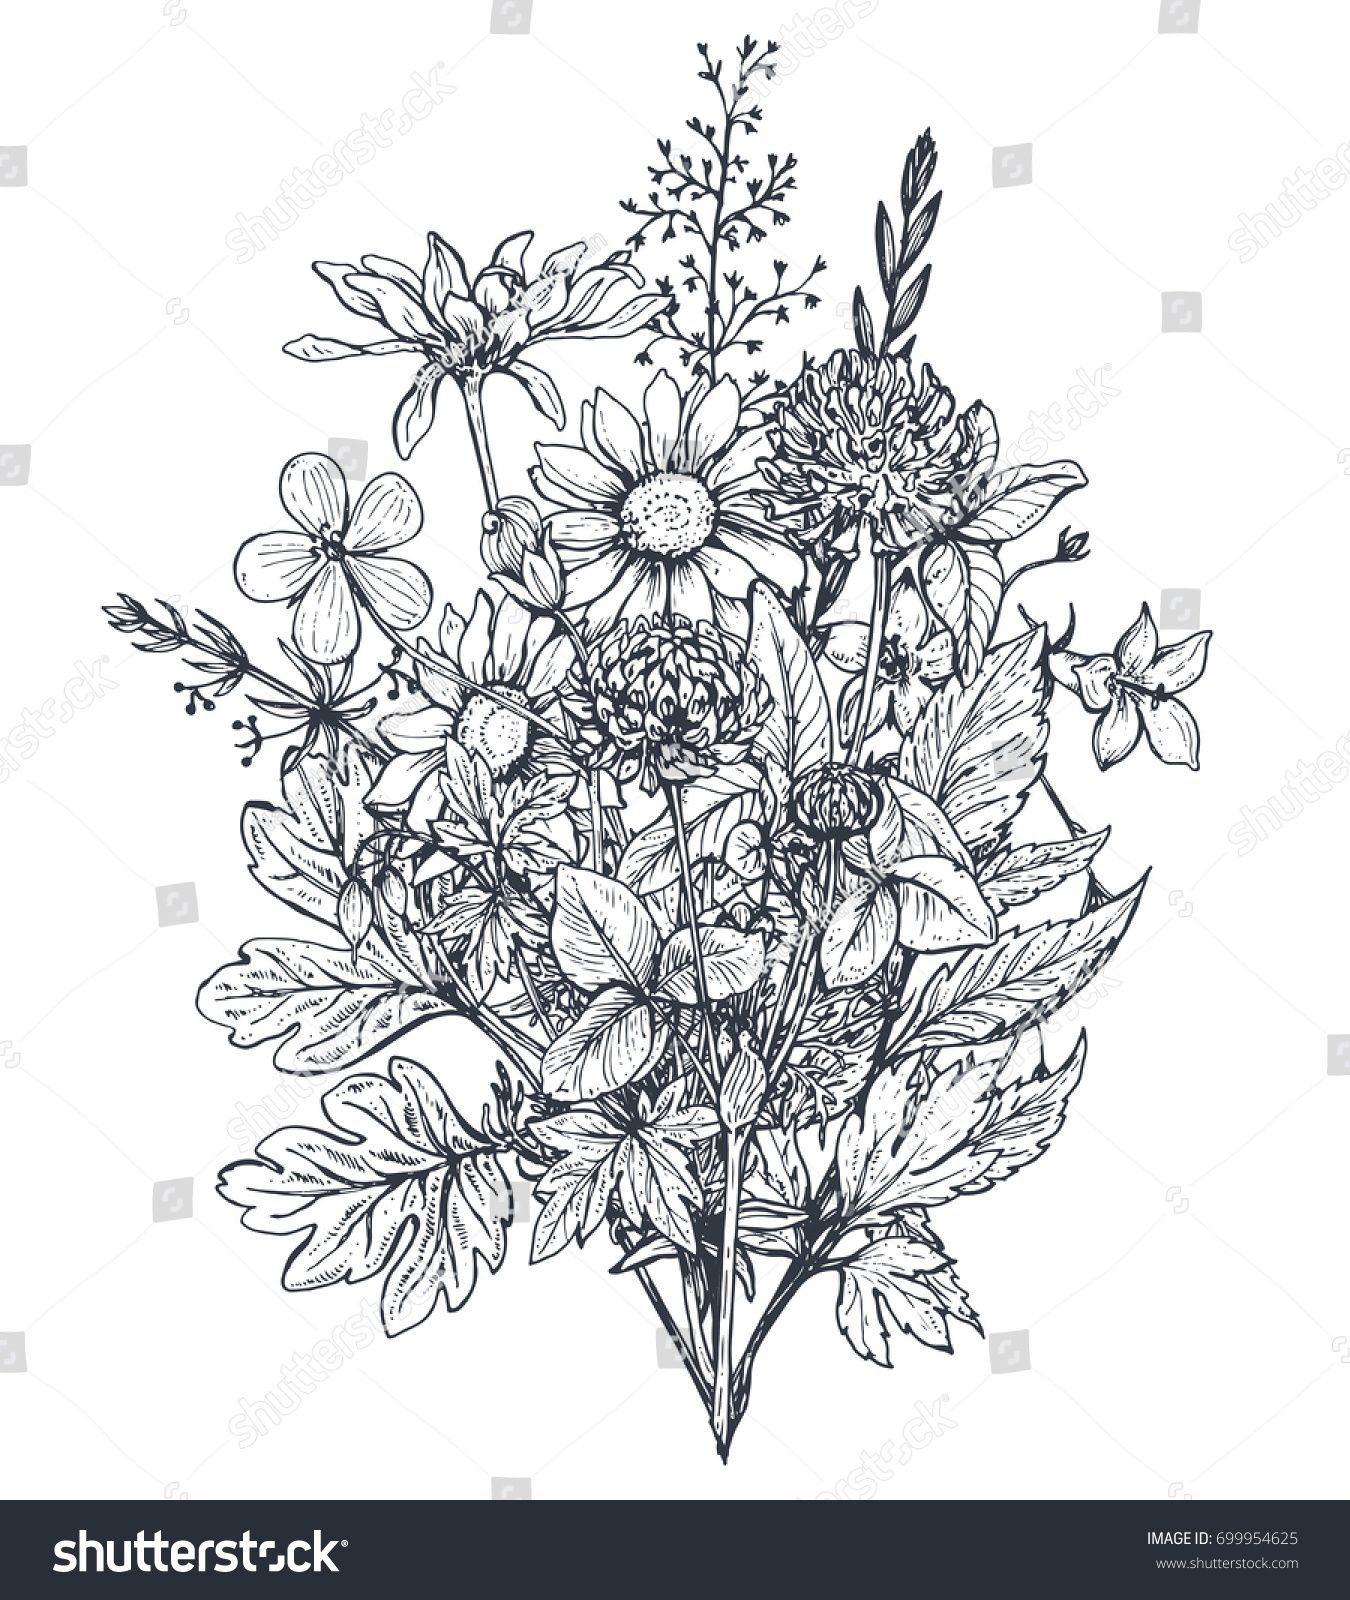 Vector Floral Bouquets With Black And White Hand Drawn Herbs And